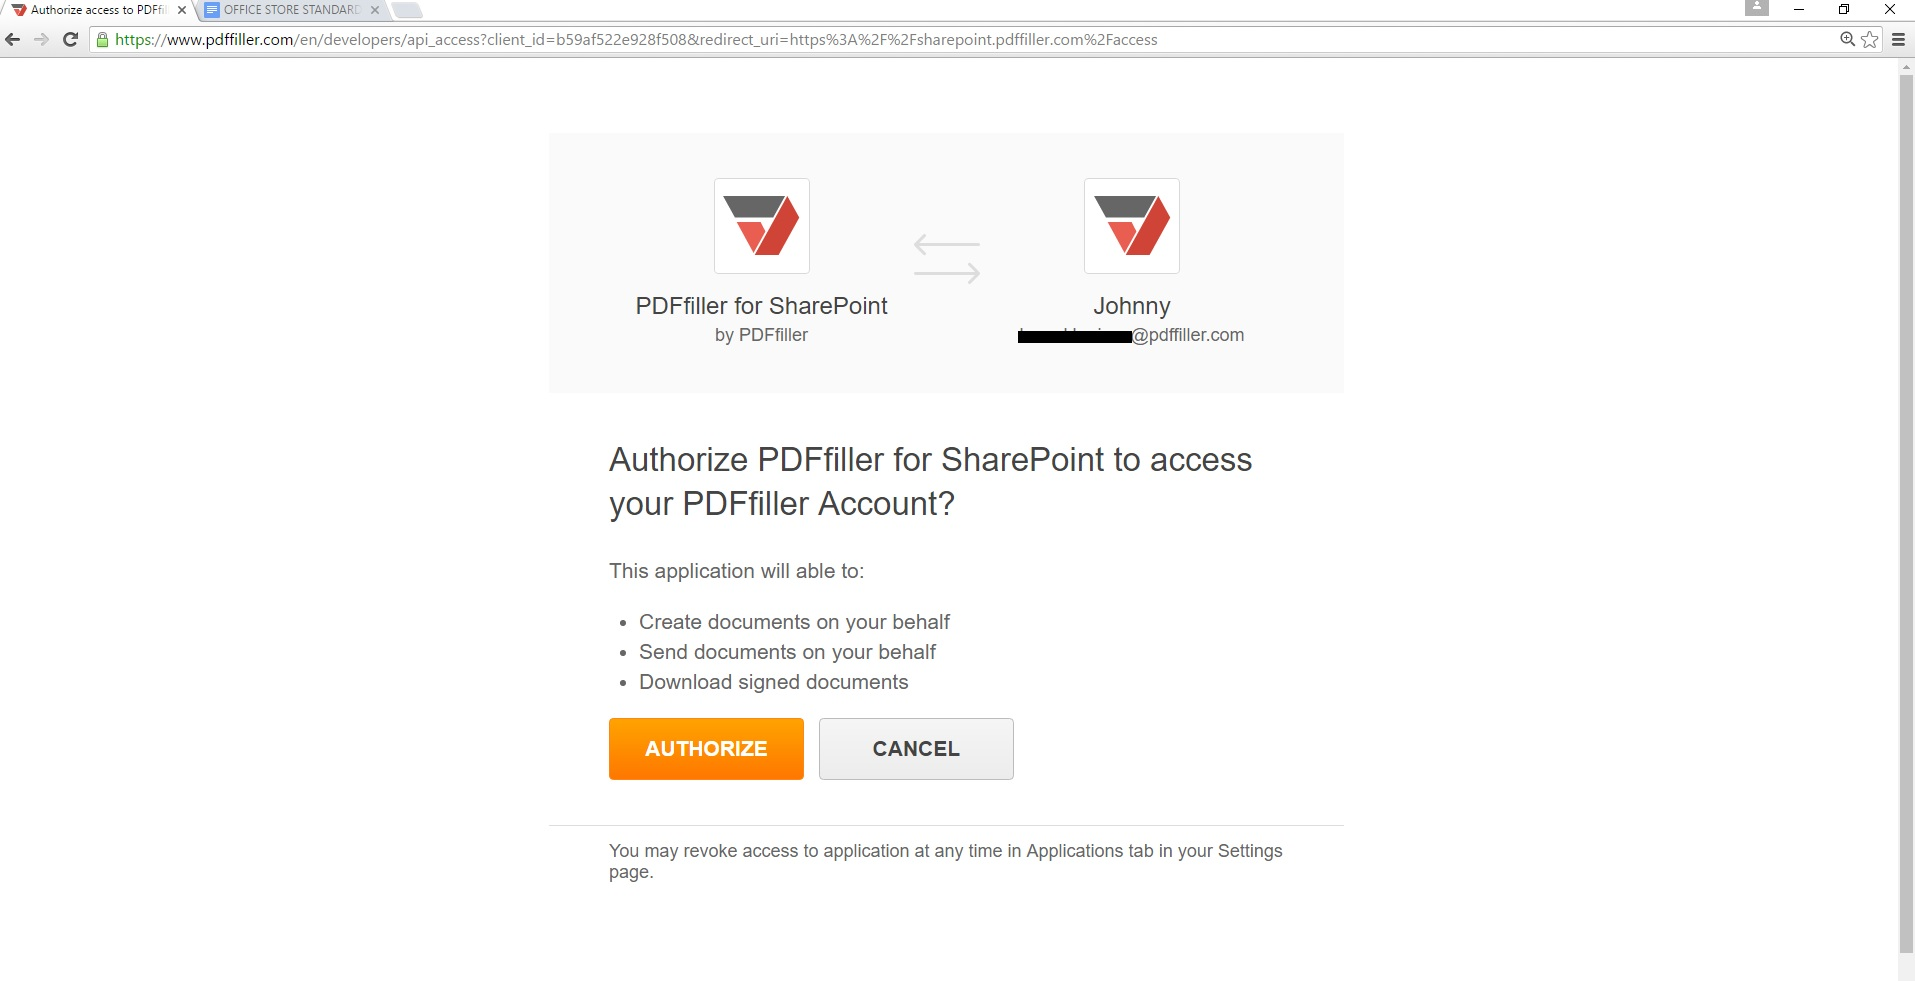 PDFfiller integration with SharePoint account